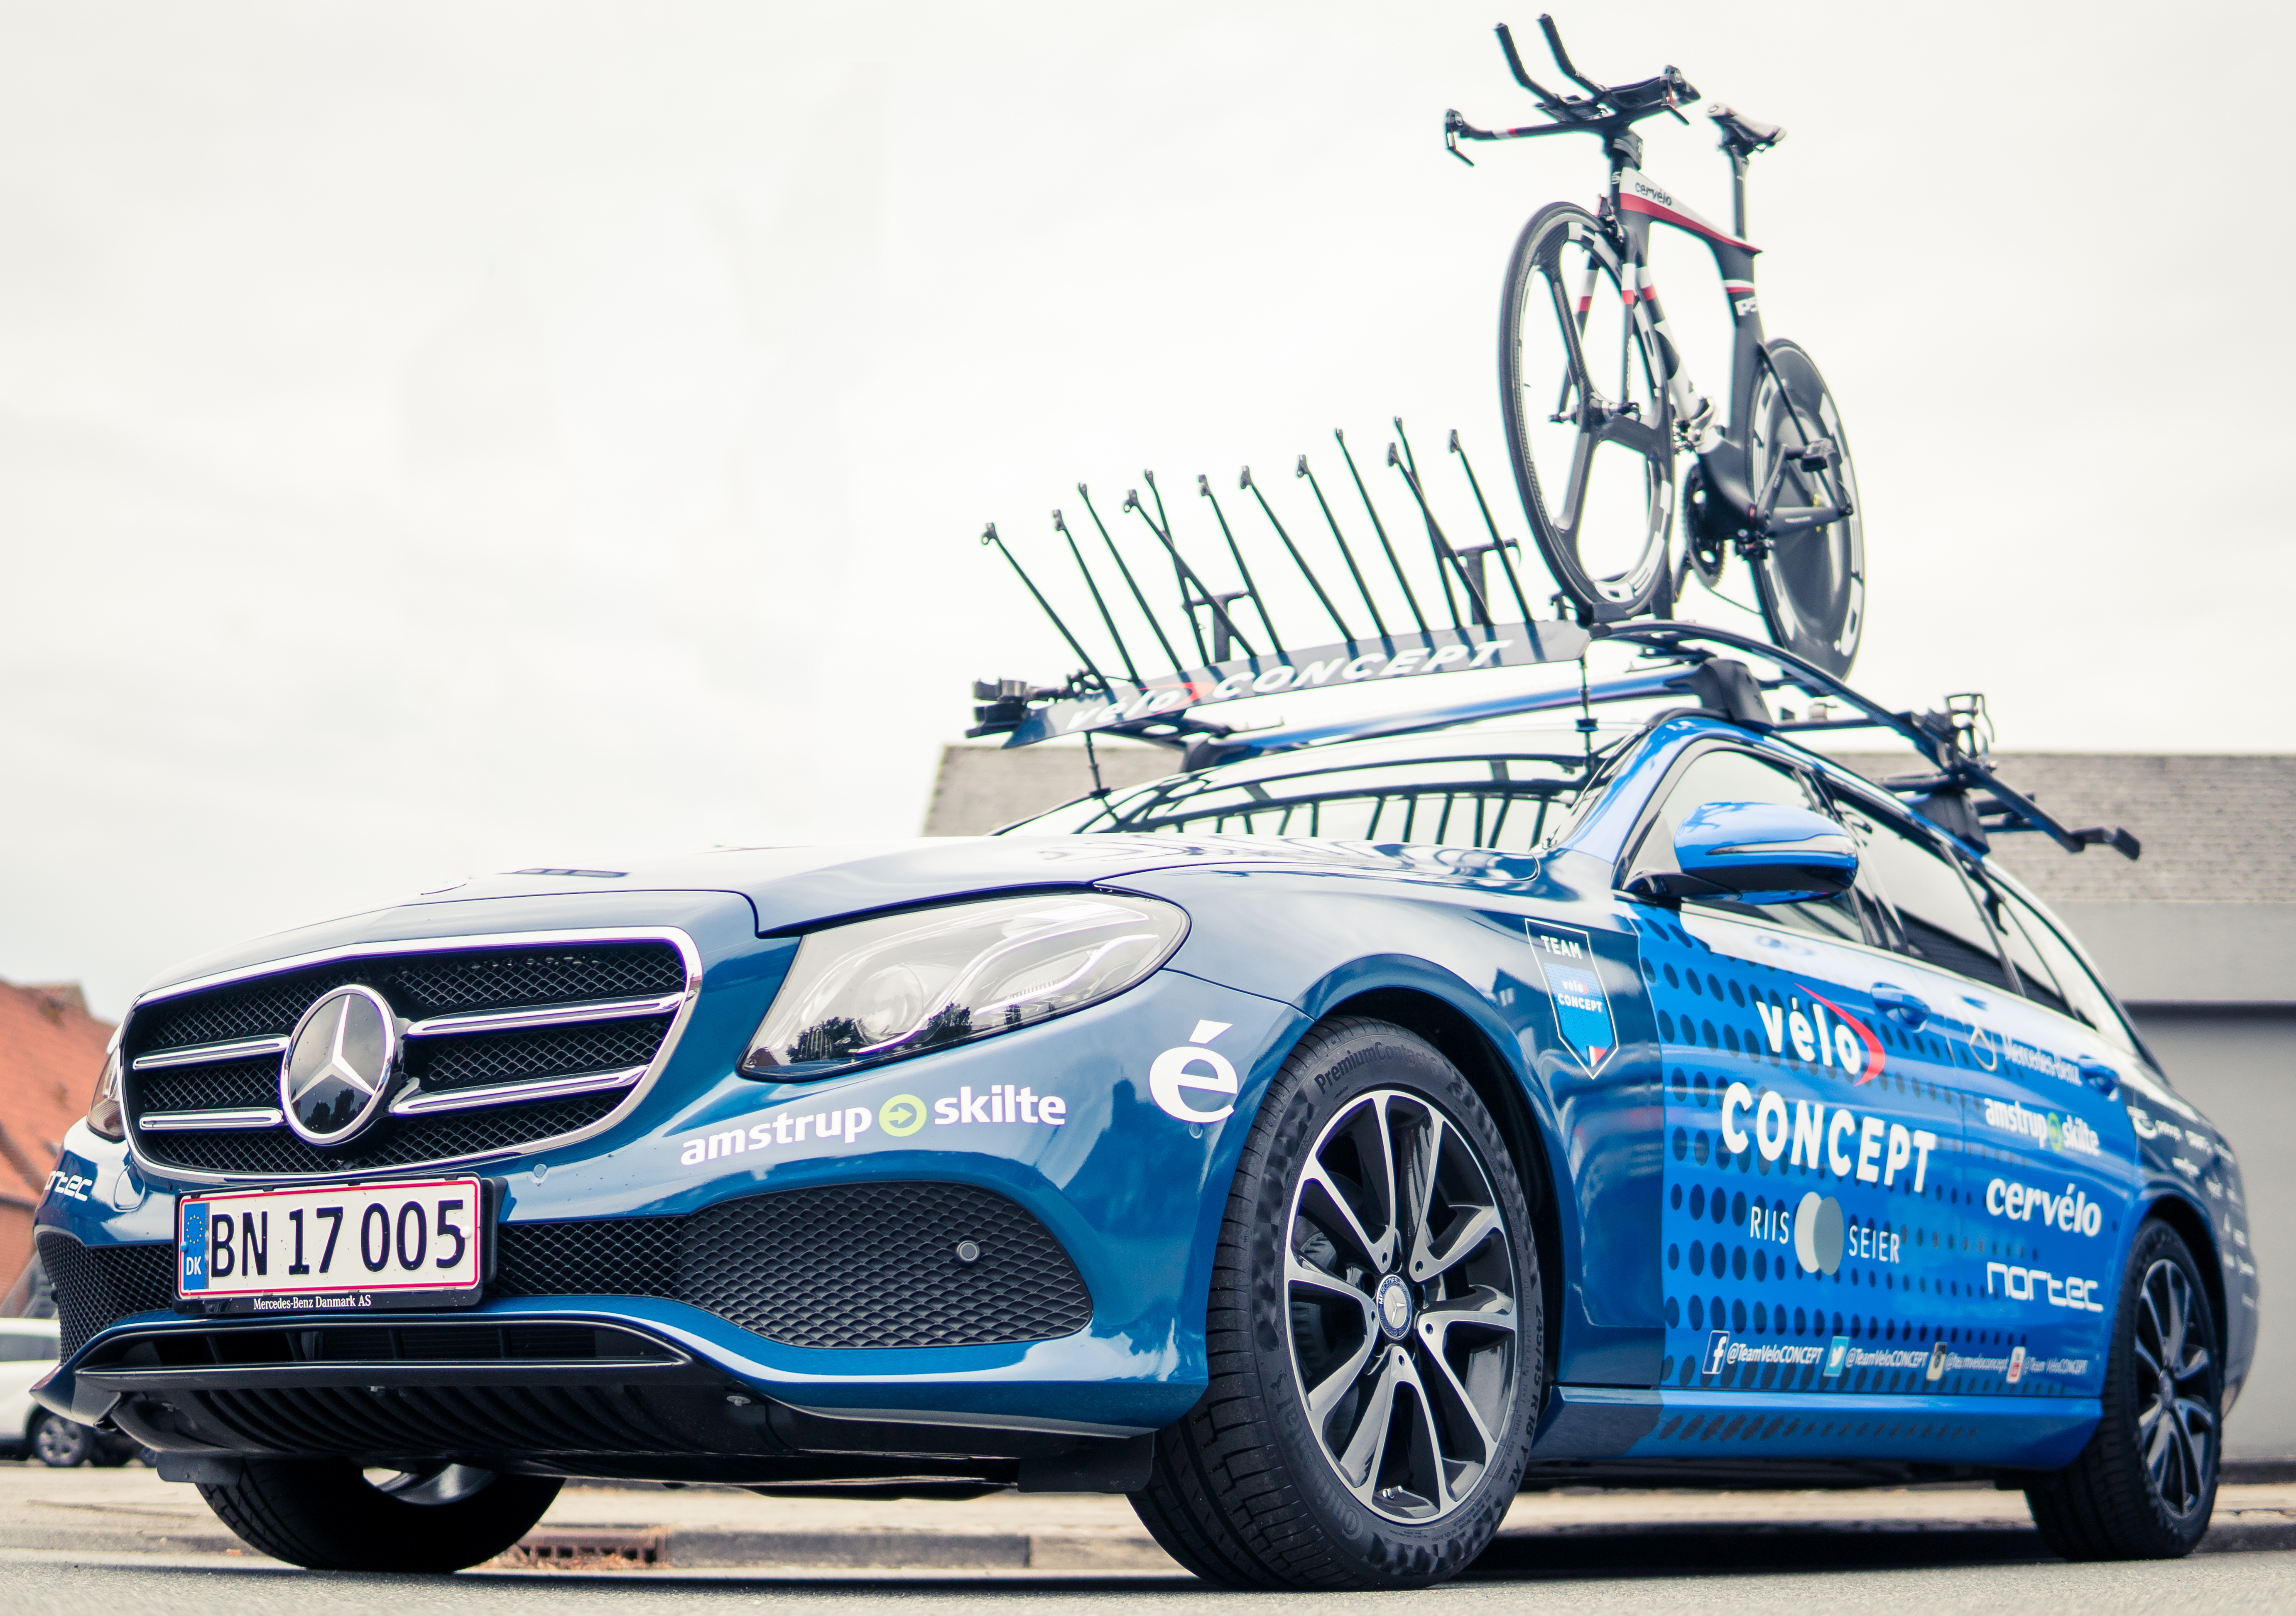 Riis Seier Project in Innovative Partnership with Mercedes-Benz Danmark